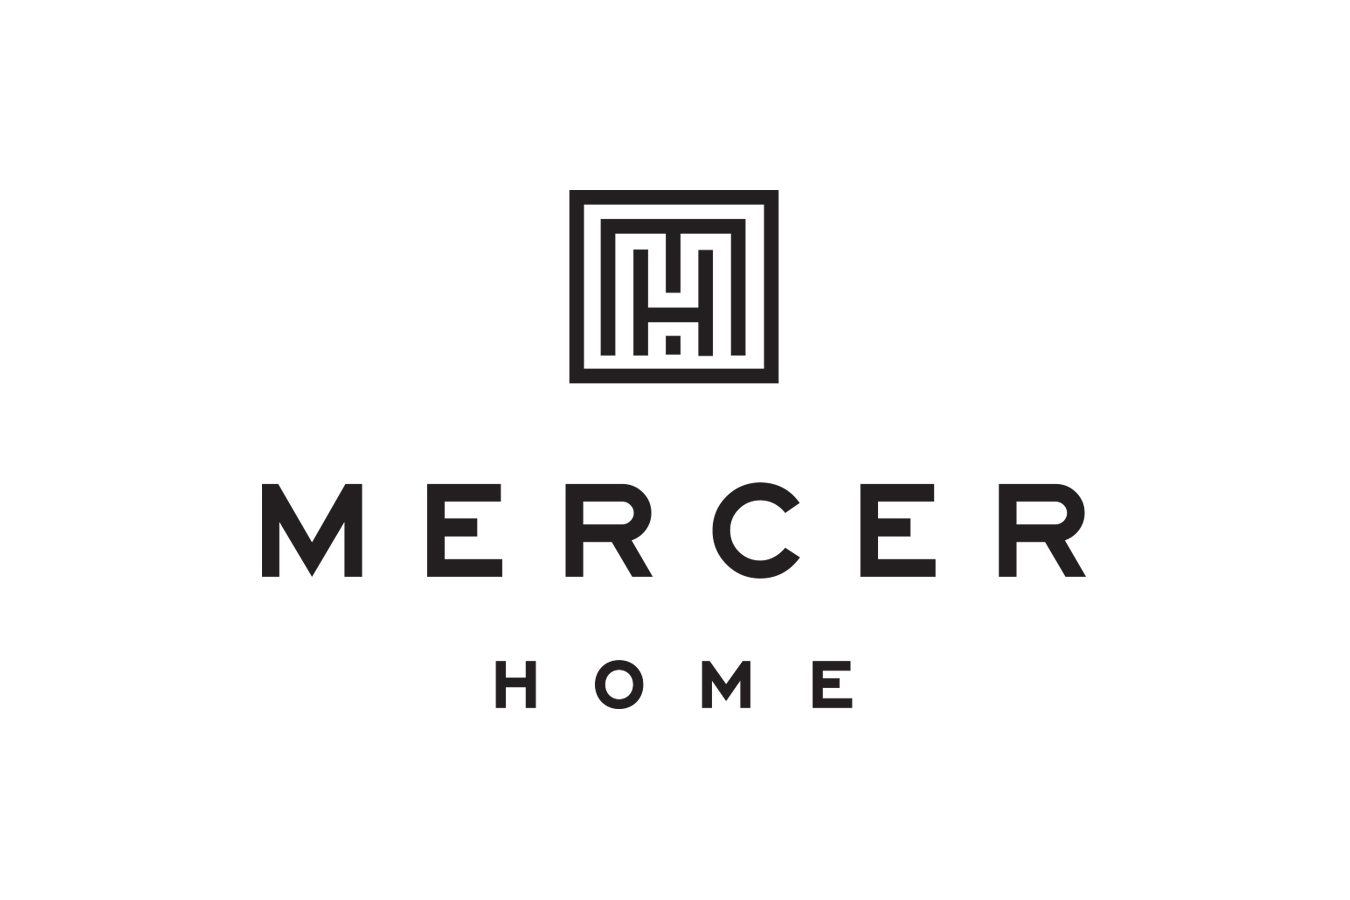 Mercer home logo